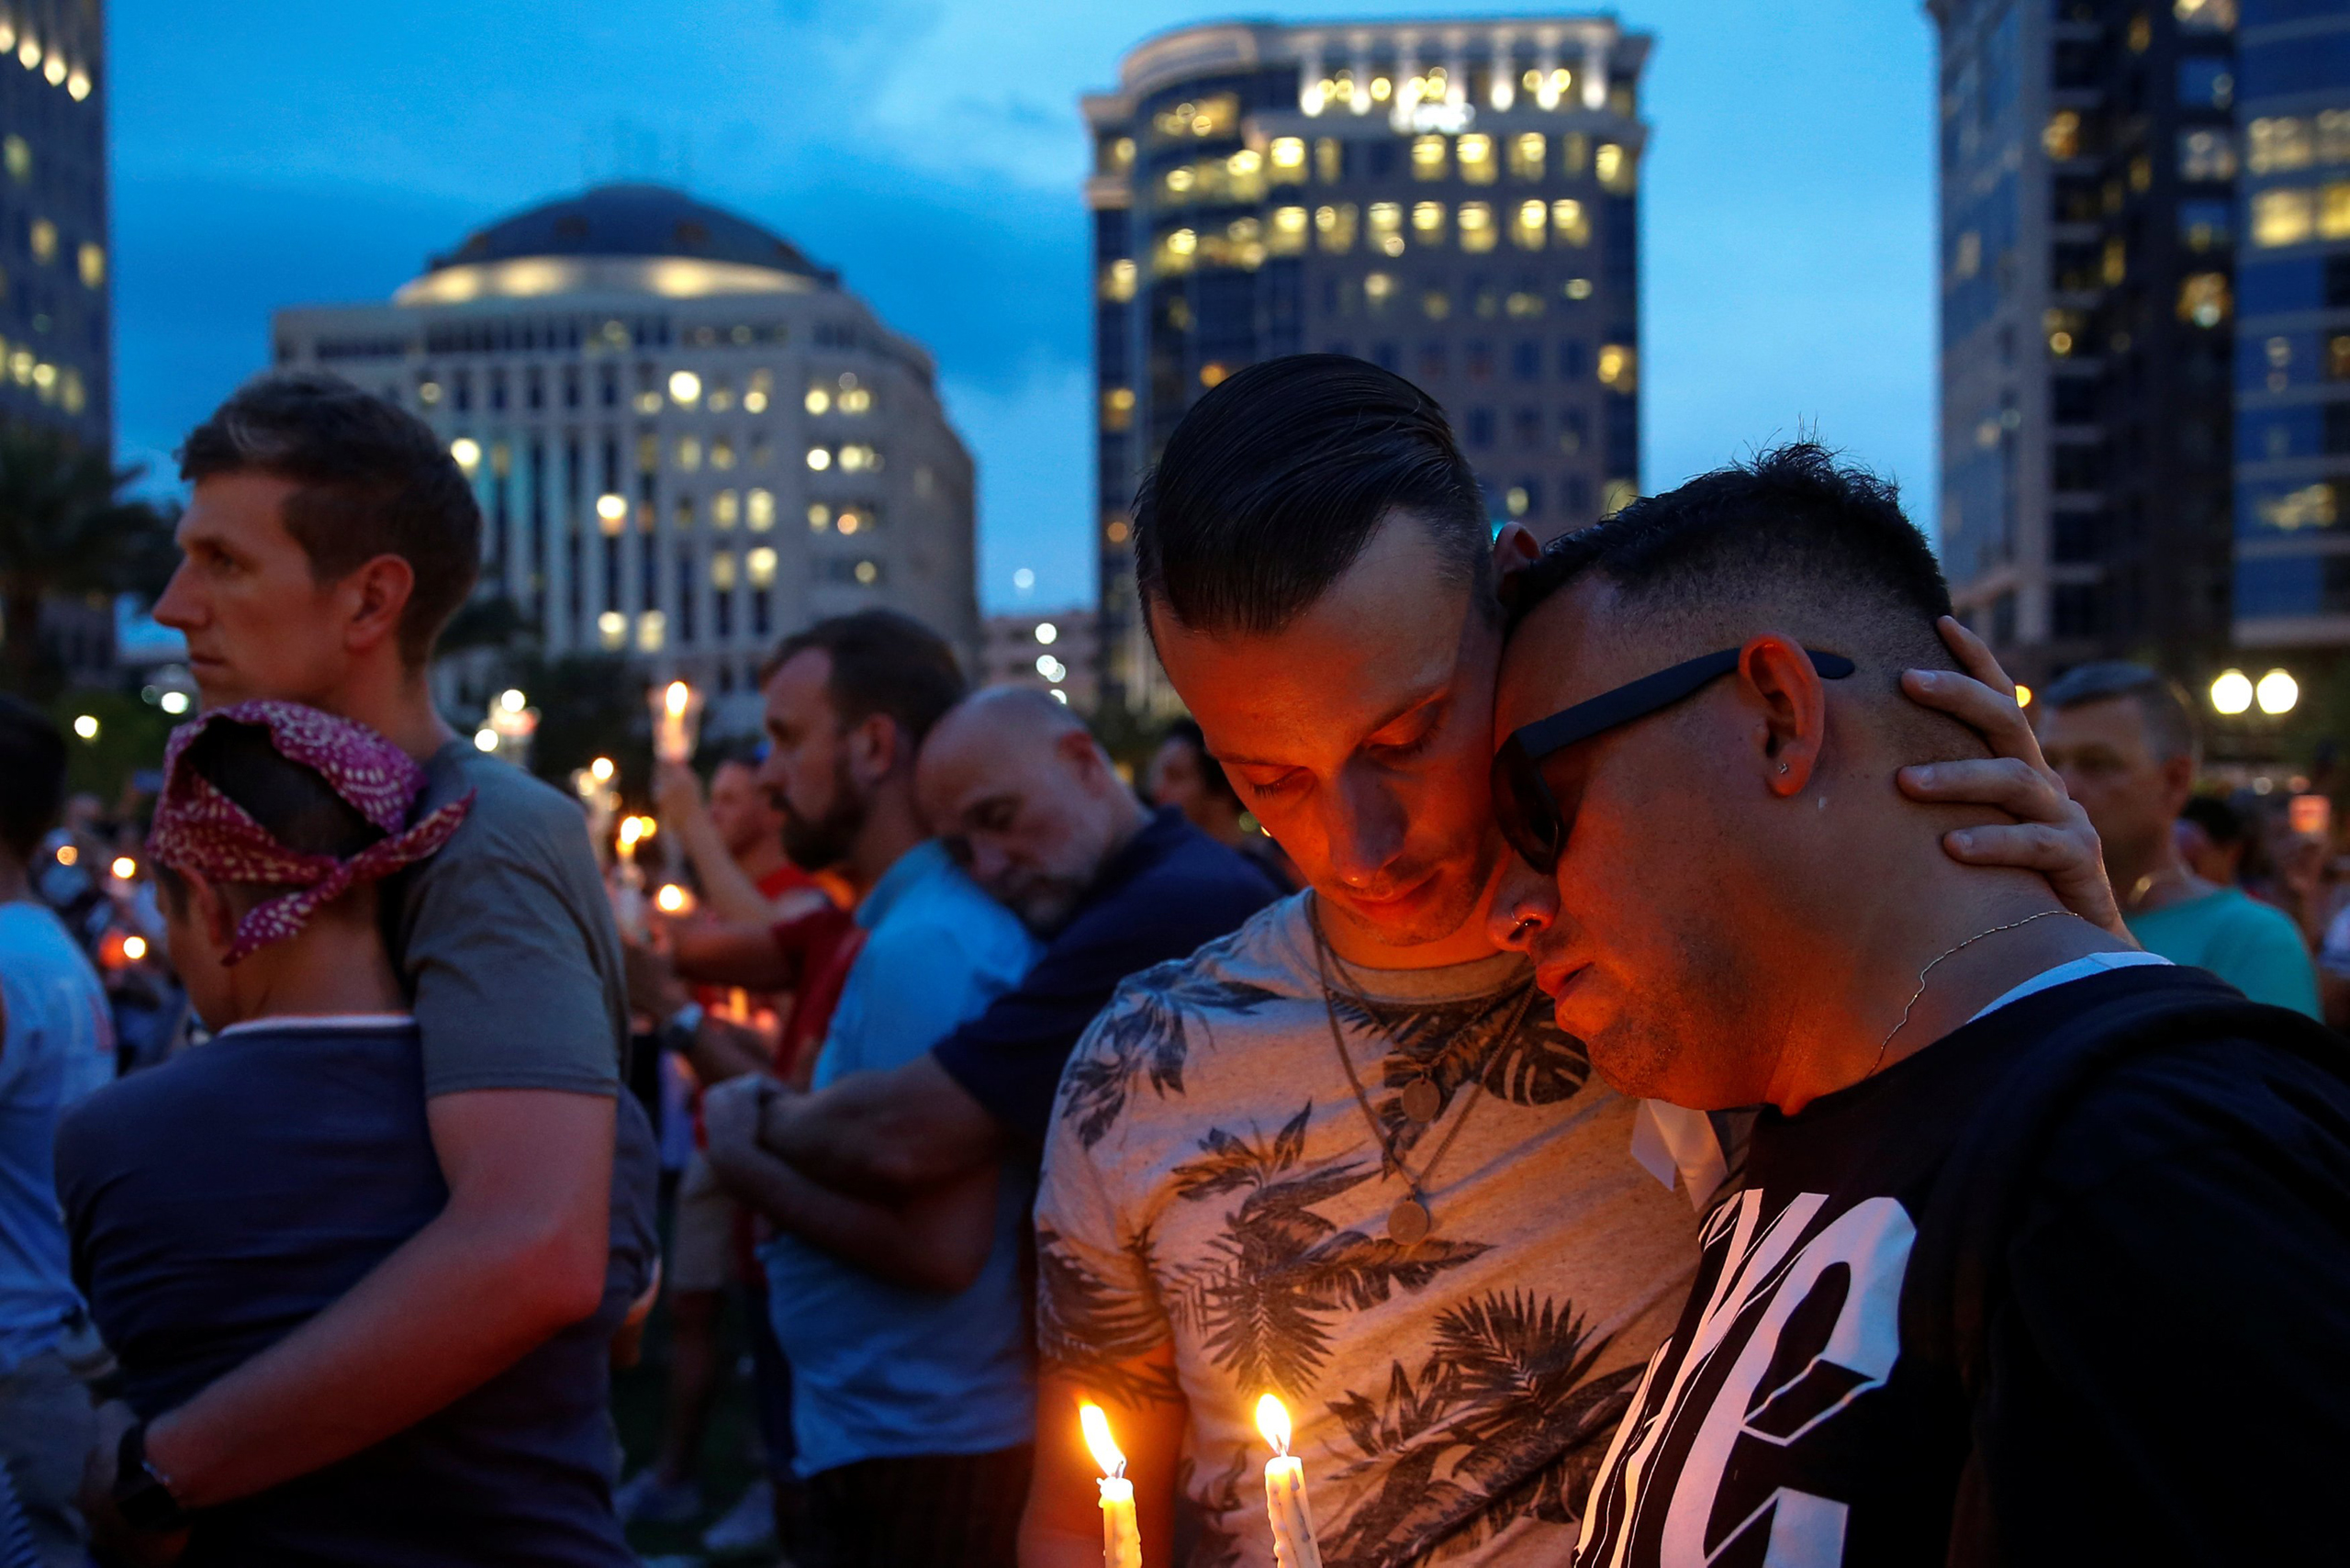 Men embrace during a candle light vigil in memory of victims one day after a mass shooting at the Pulse gay night club in Orlando on June 13, 2016.